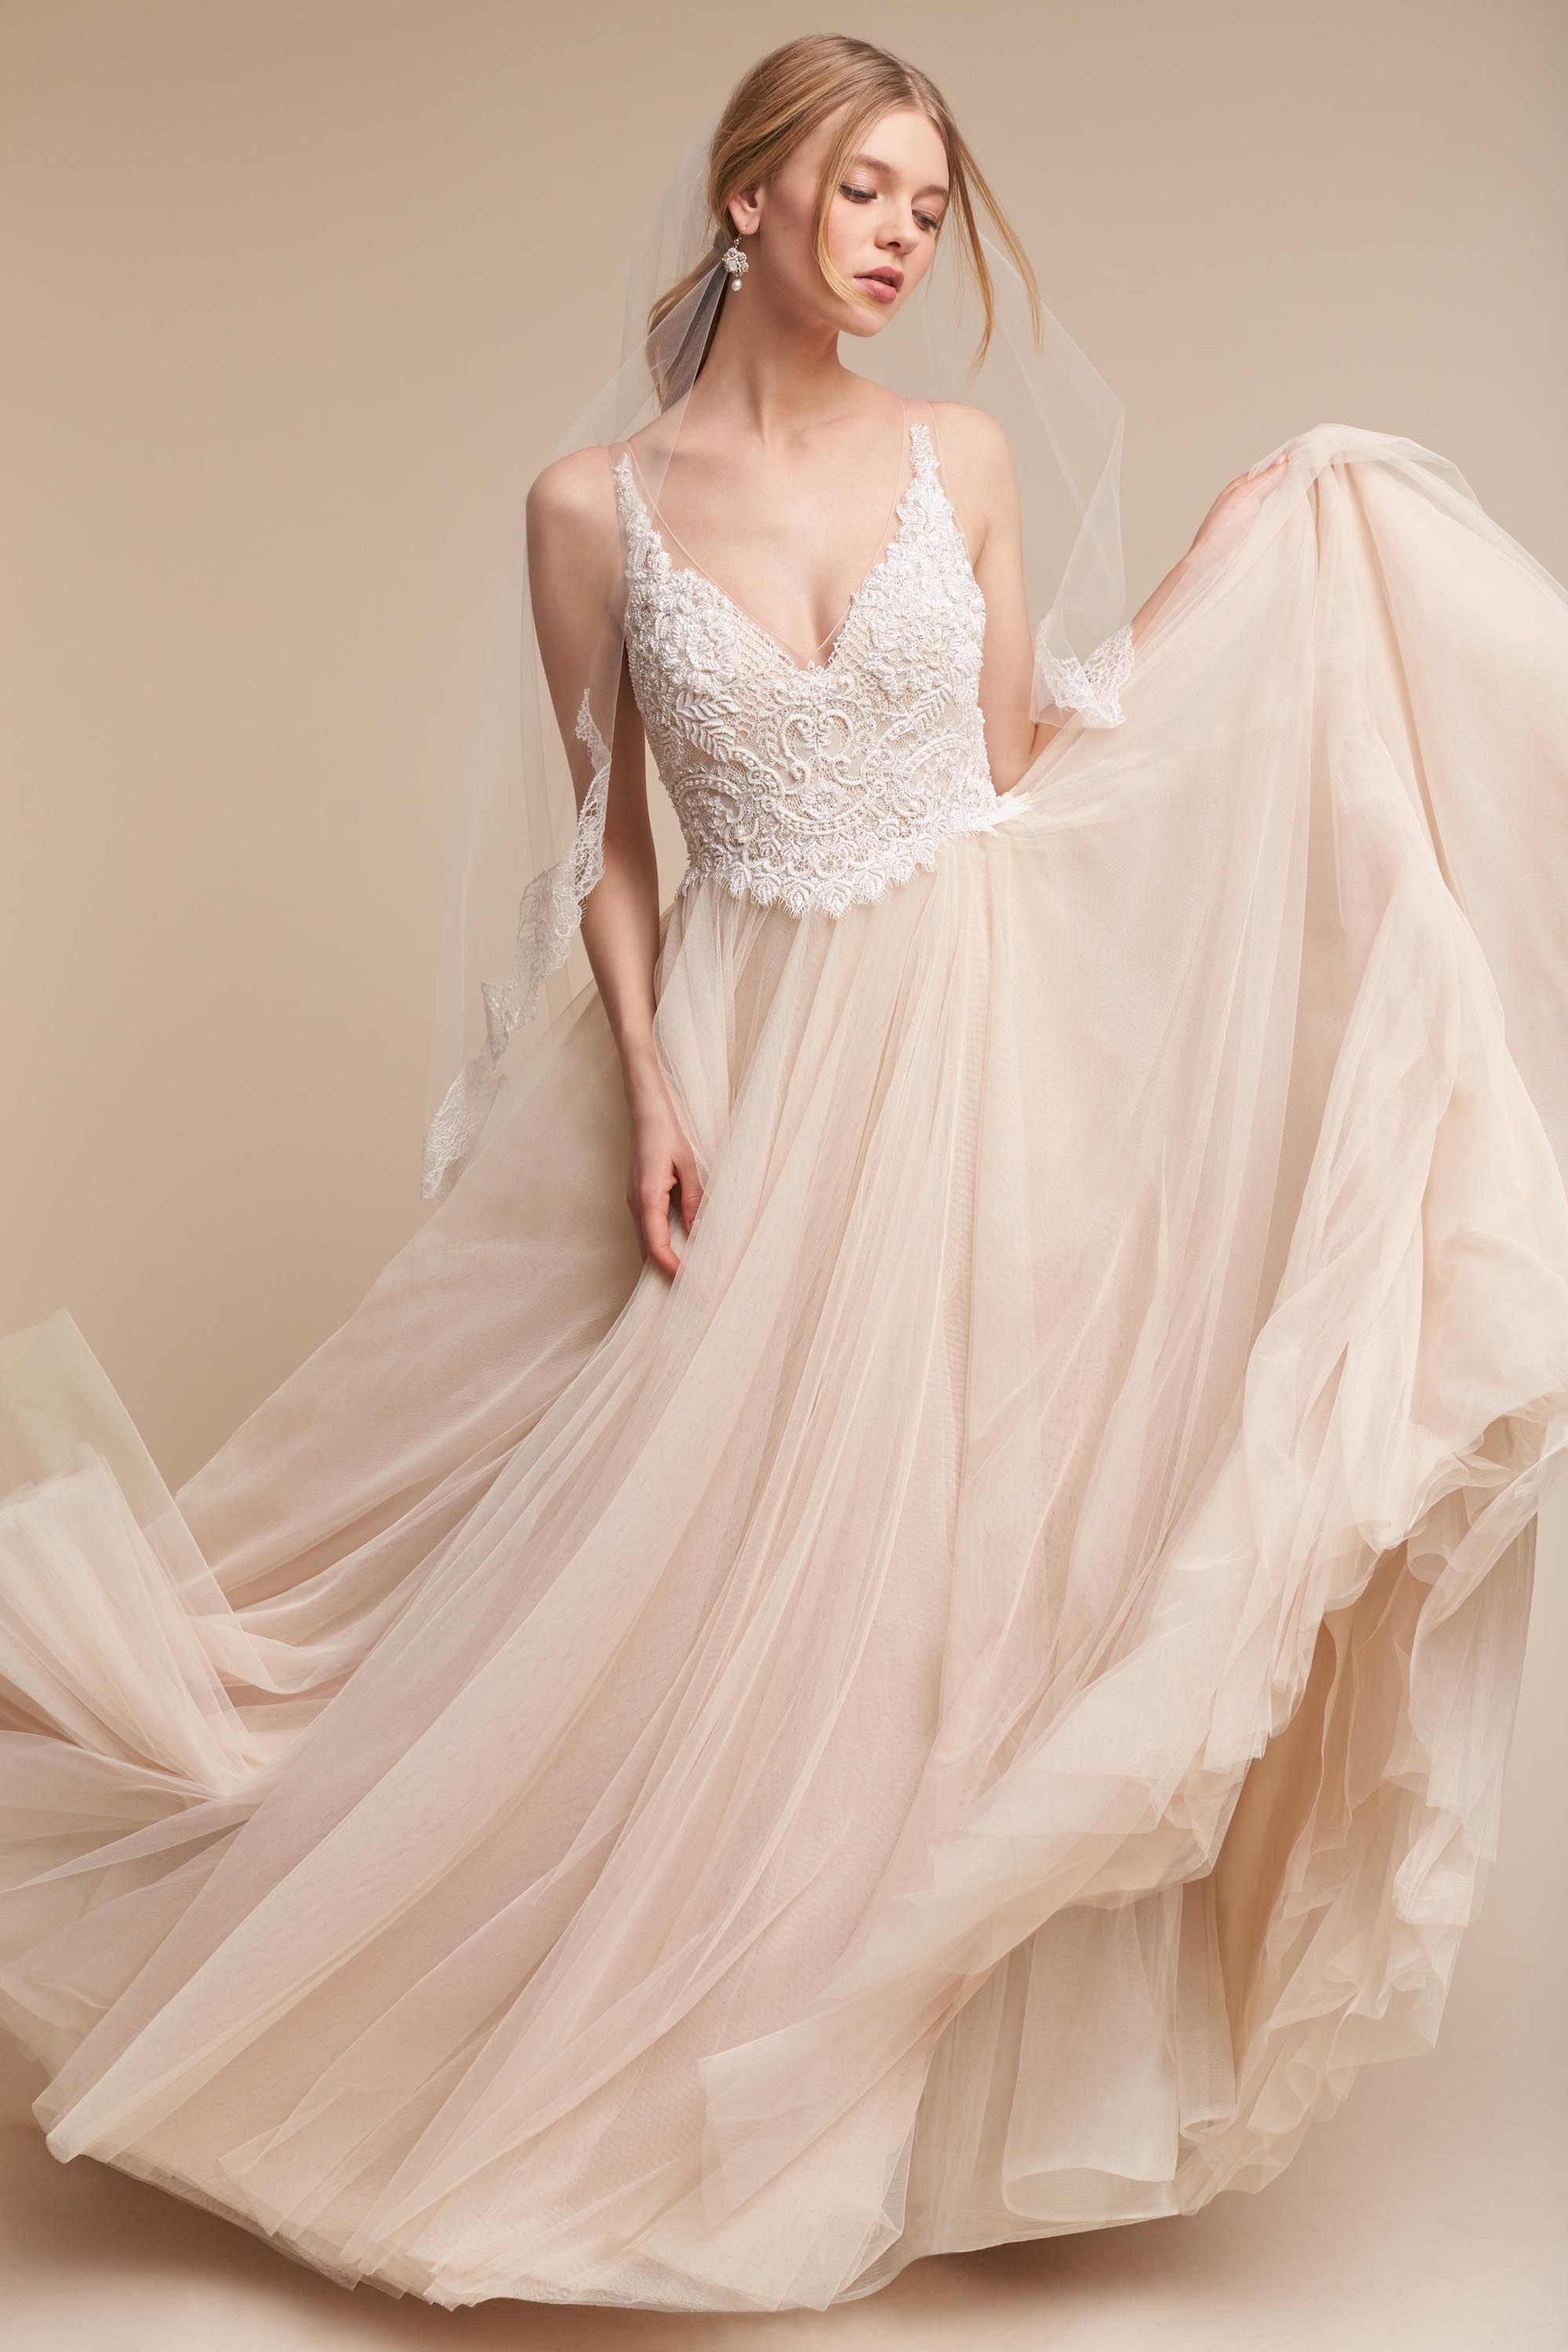 BHLDN Chantal Gown in New | BHLDN | Wedding | Pinterest | Gowns ...